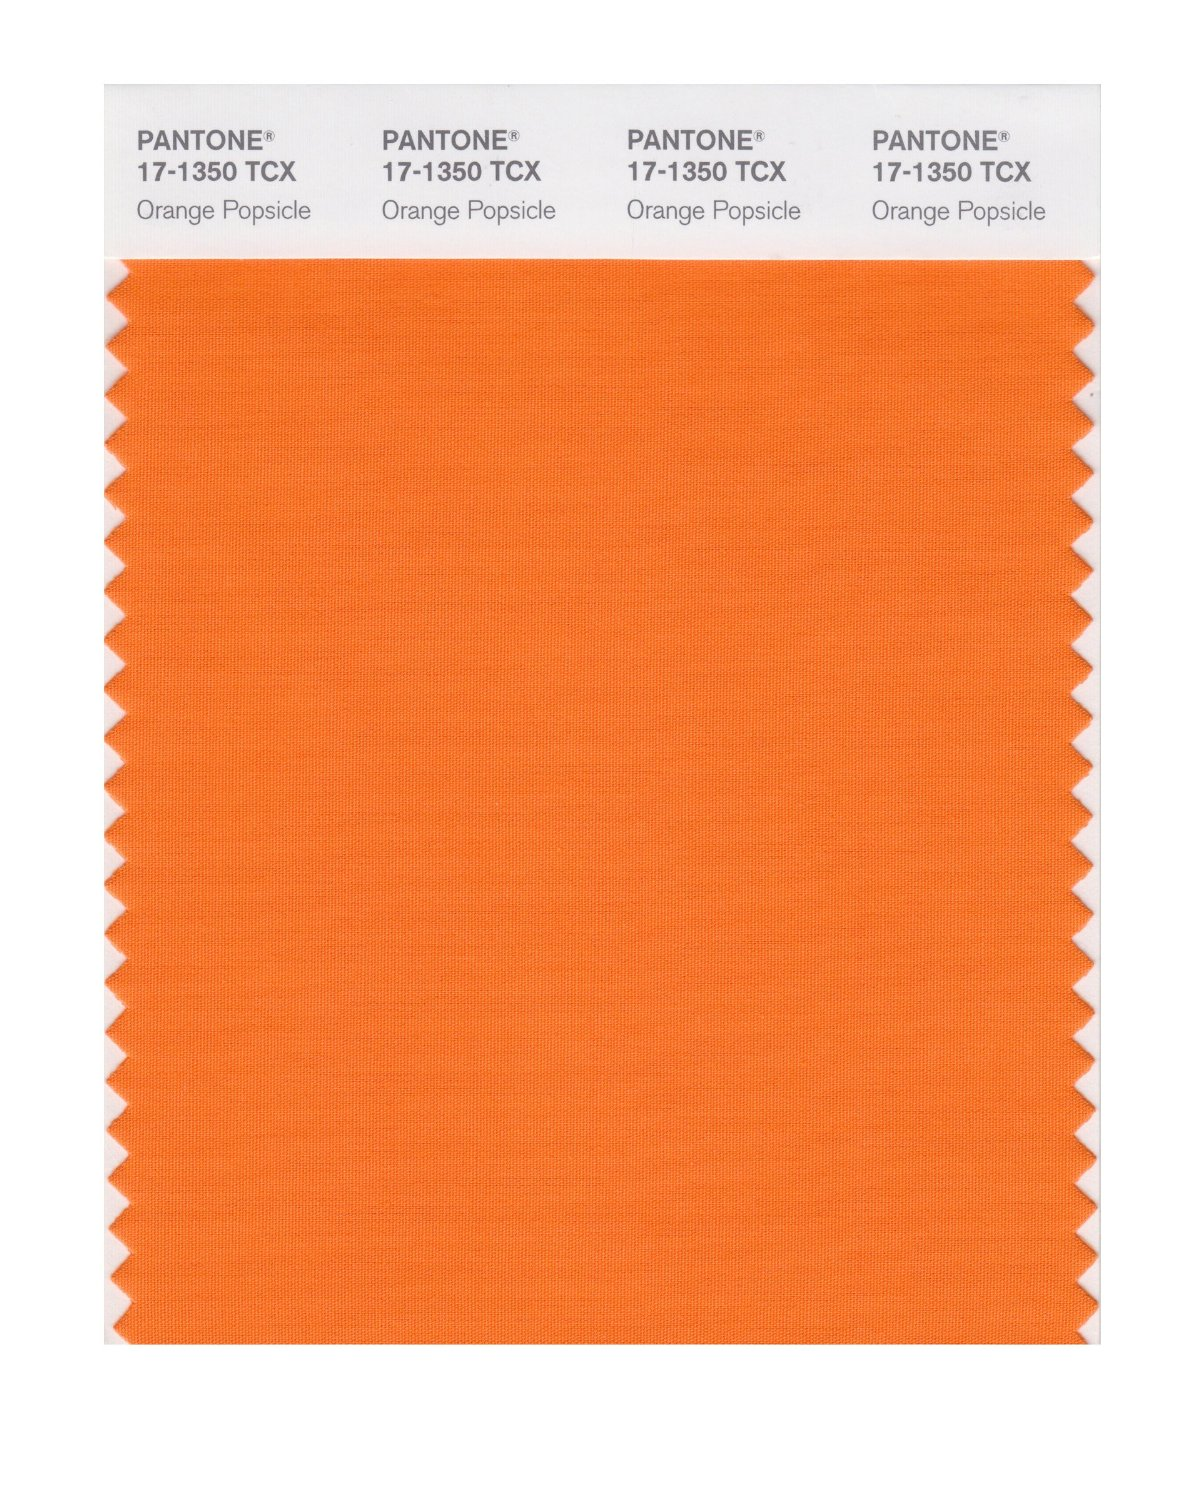 Pantone Smart Swatch 17-1350 Orange Popsicle